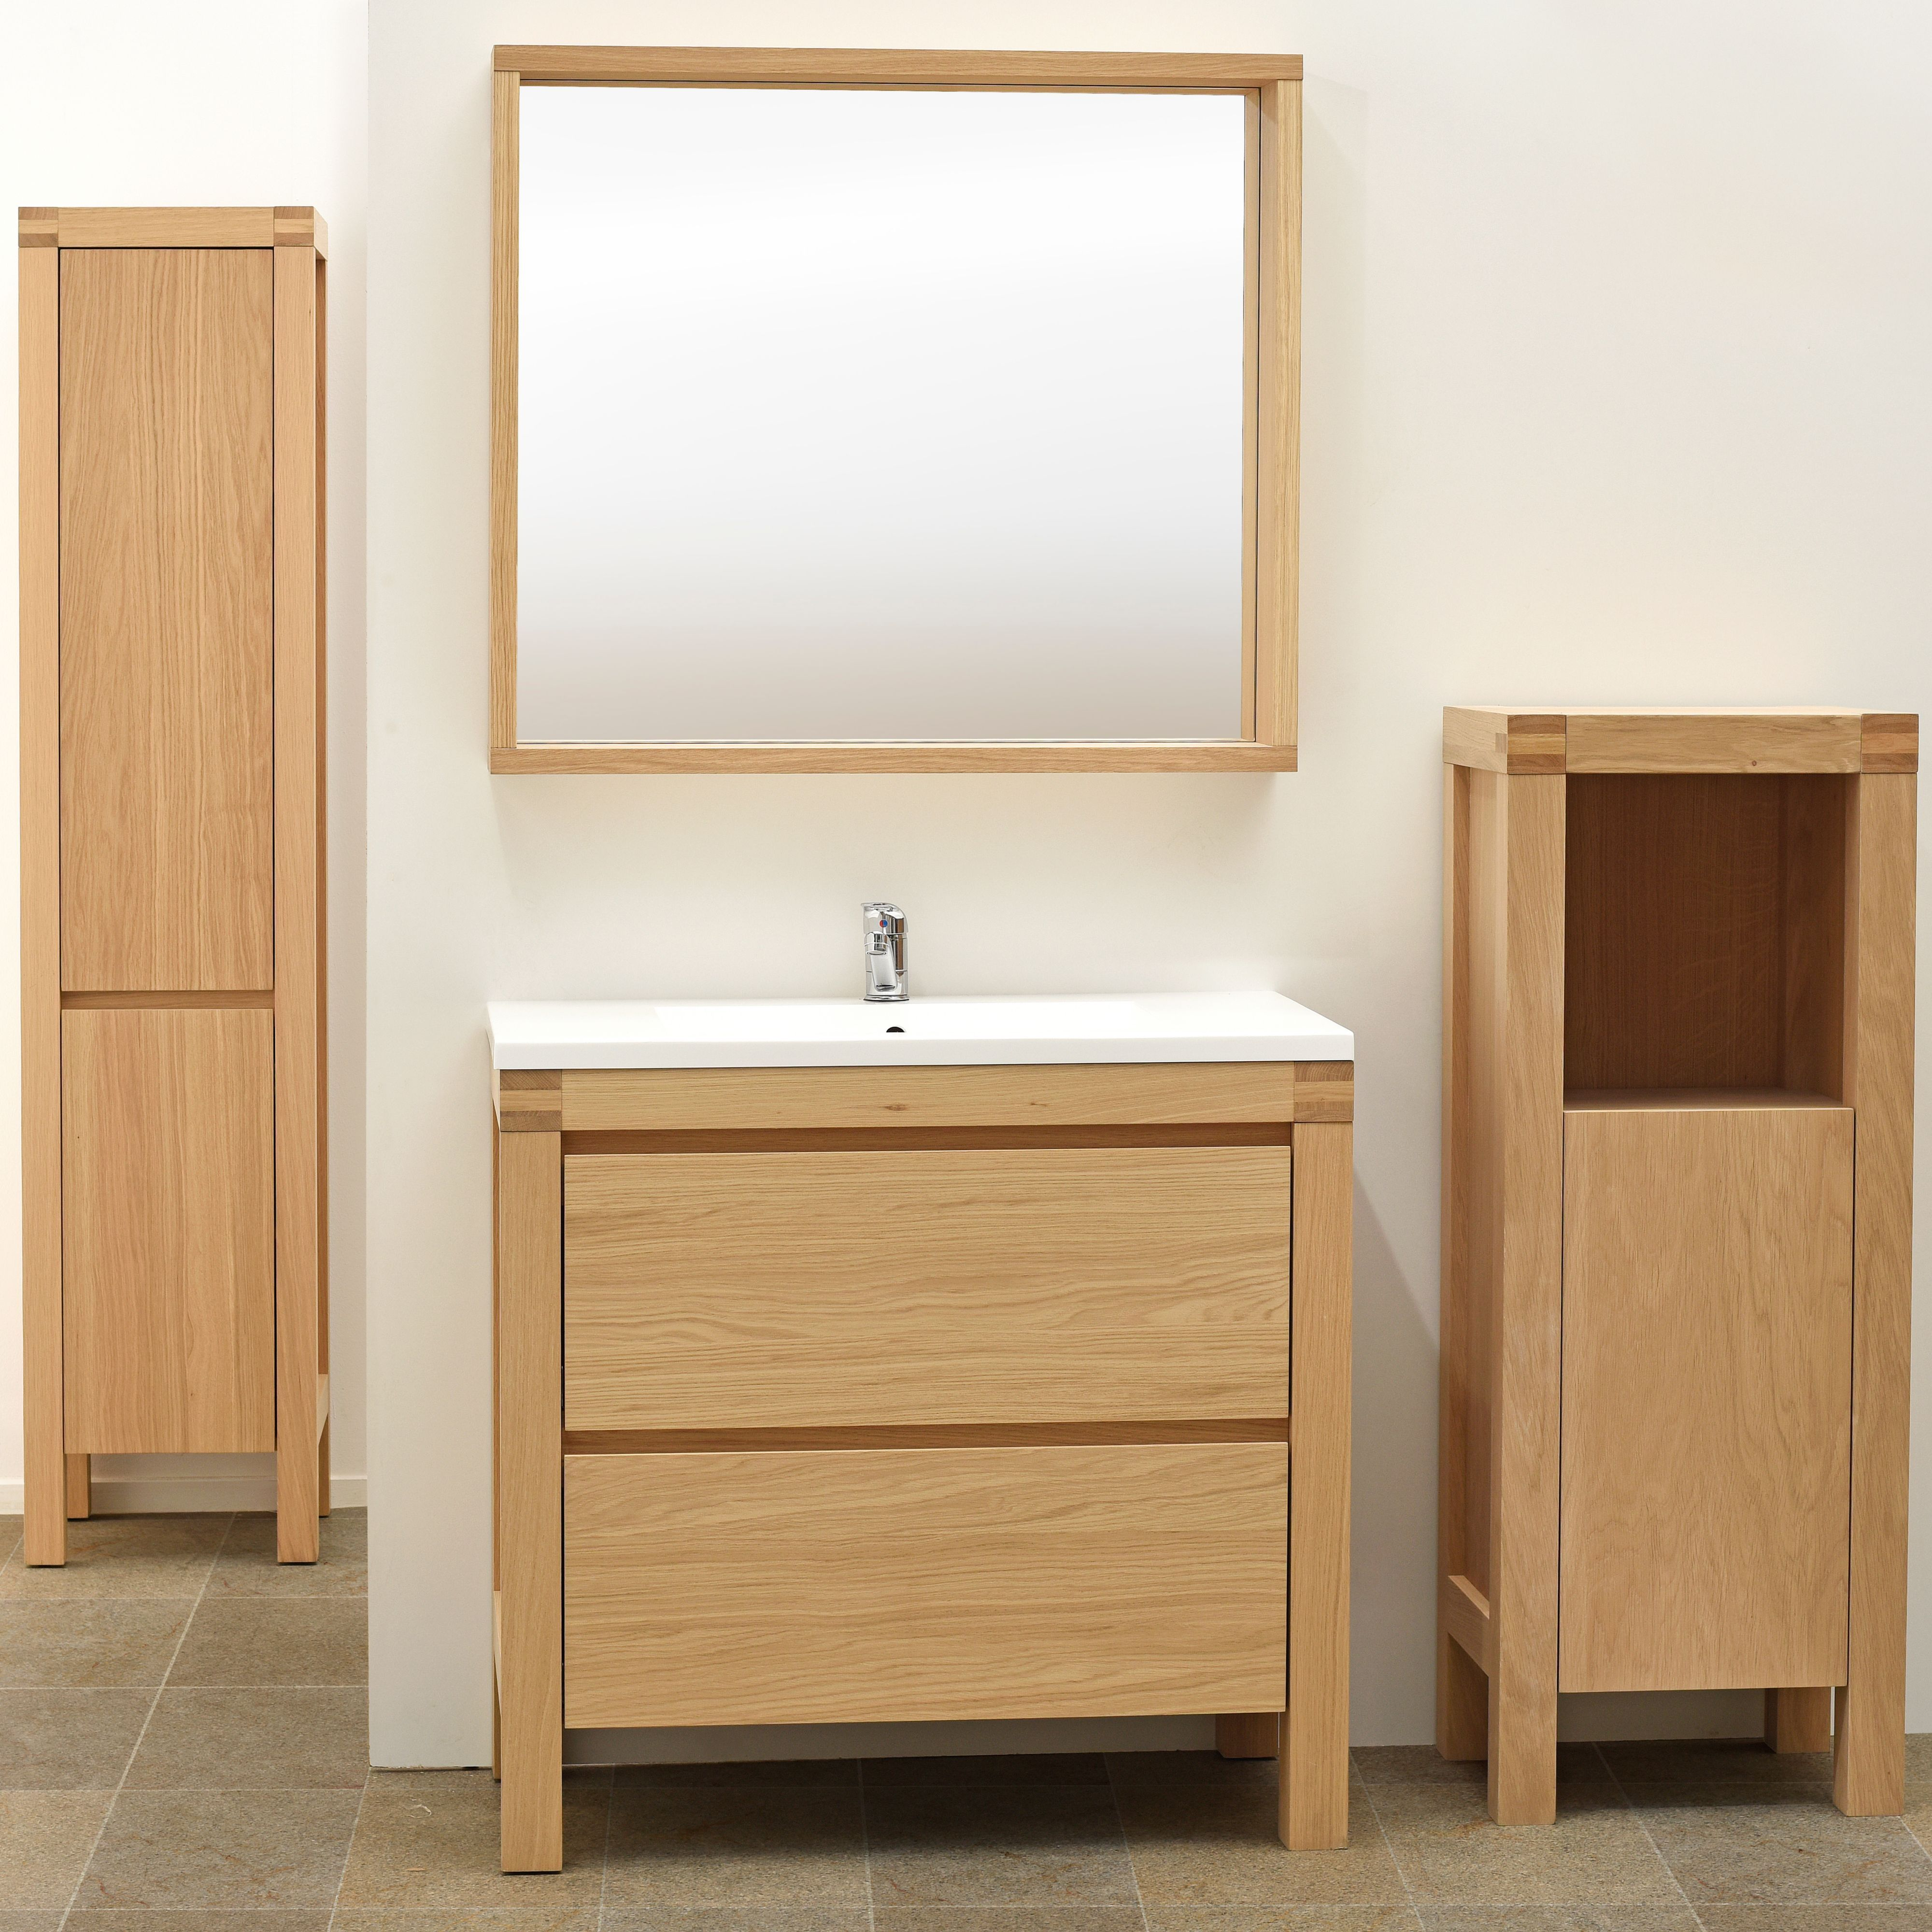 Quality vanity units bathroom - Add A Modern Touch To Your Bathroom With The Erwan Range With A High